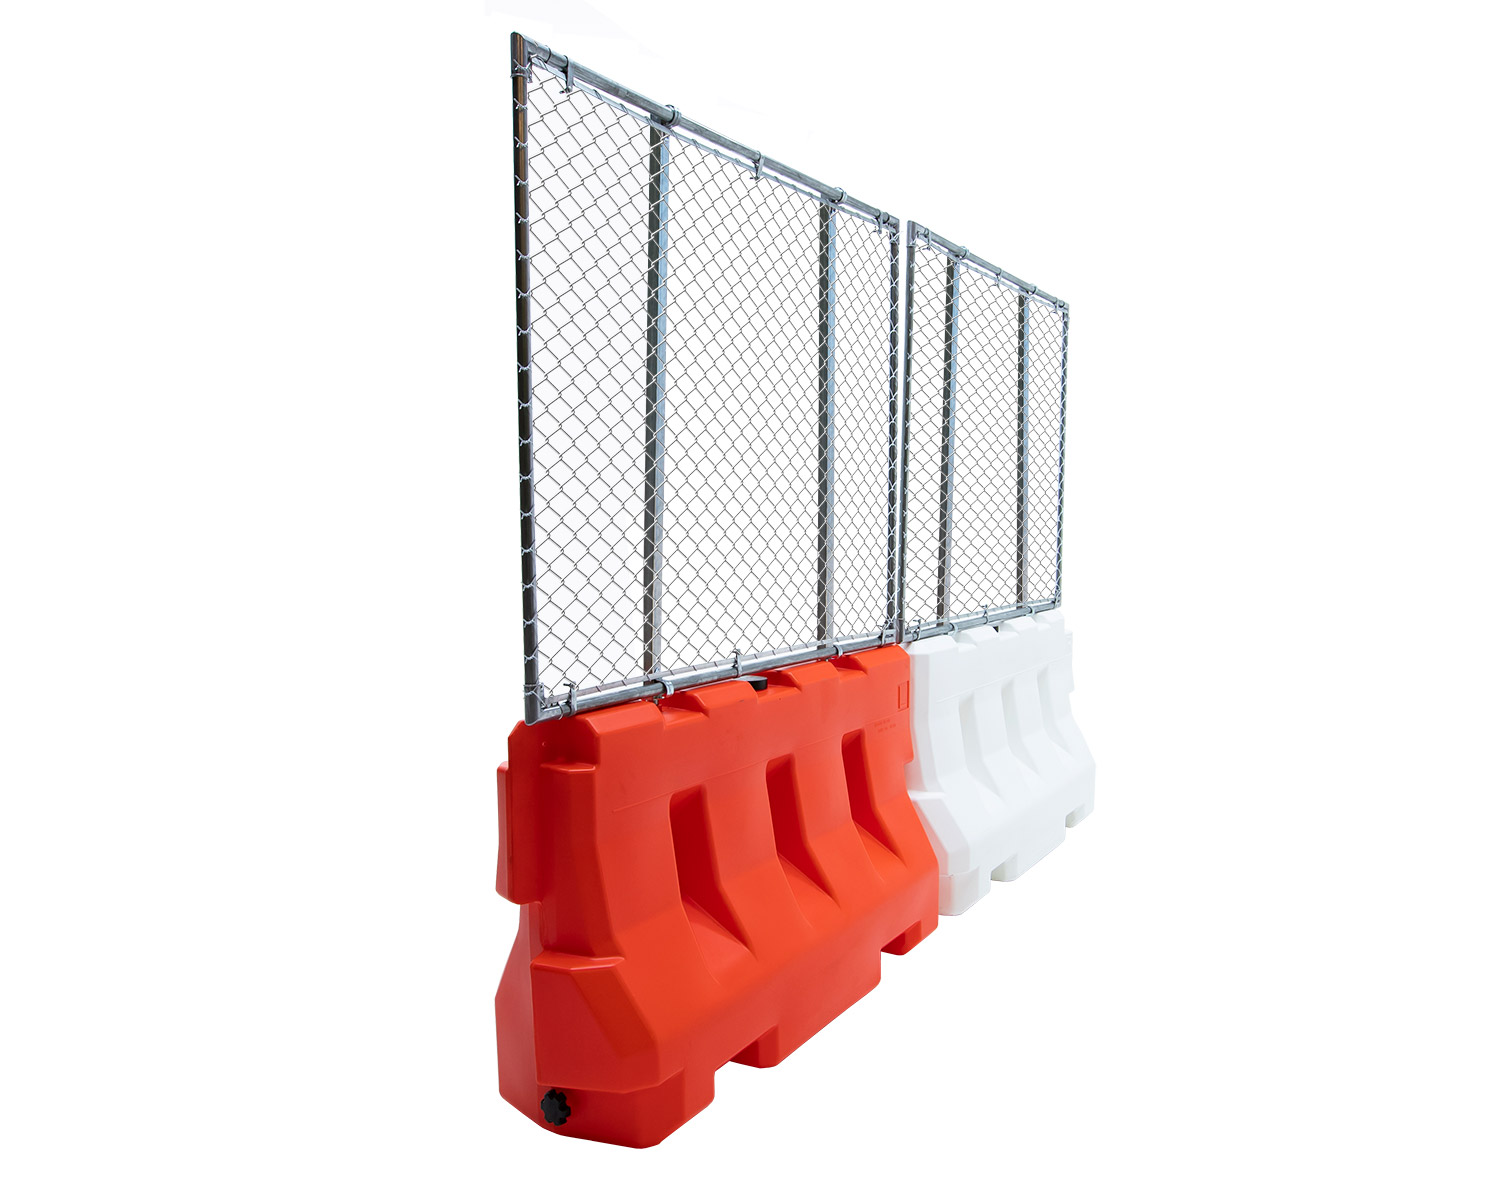 create an 8-foot barrier to entry with plastic jersey barricades and fence panels